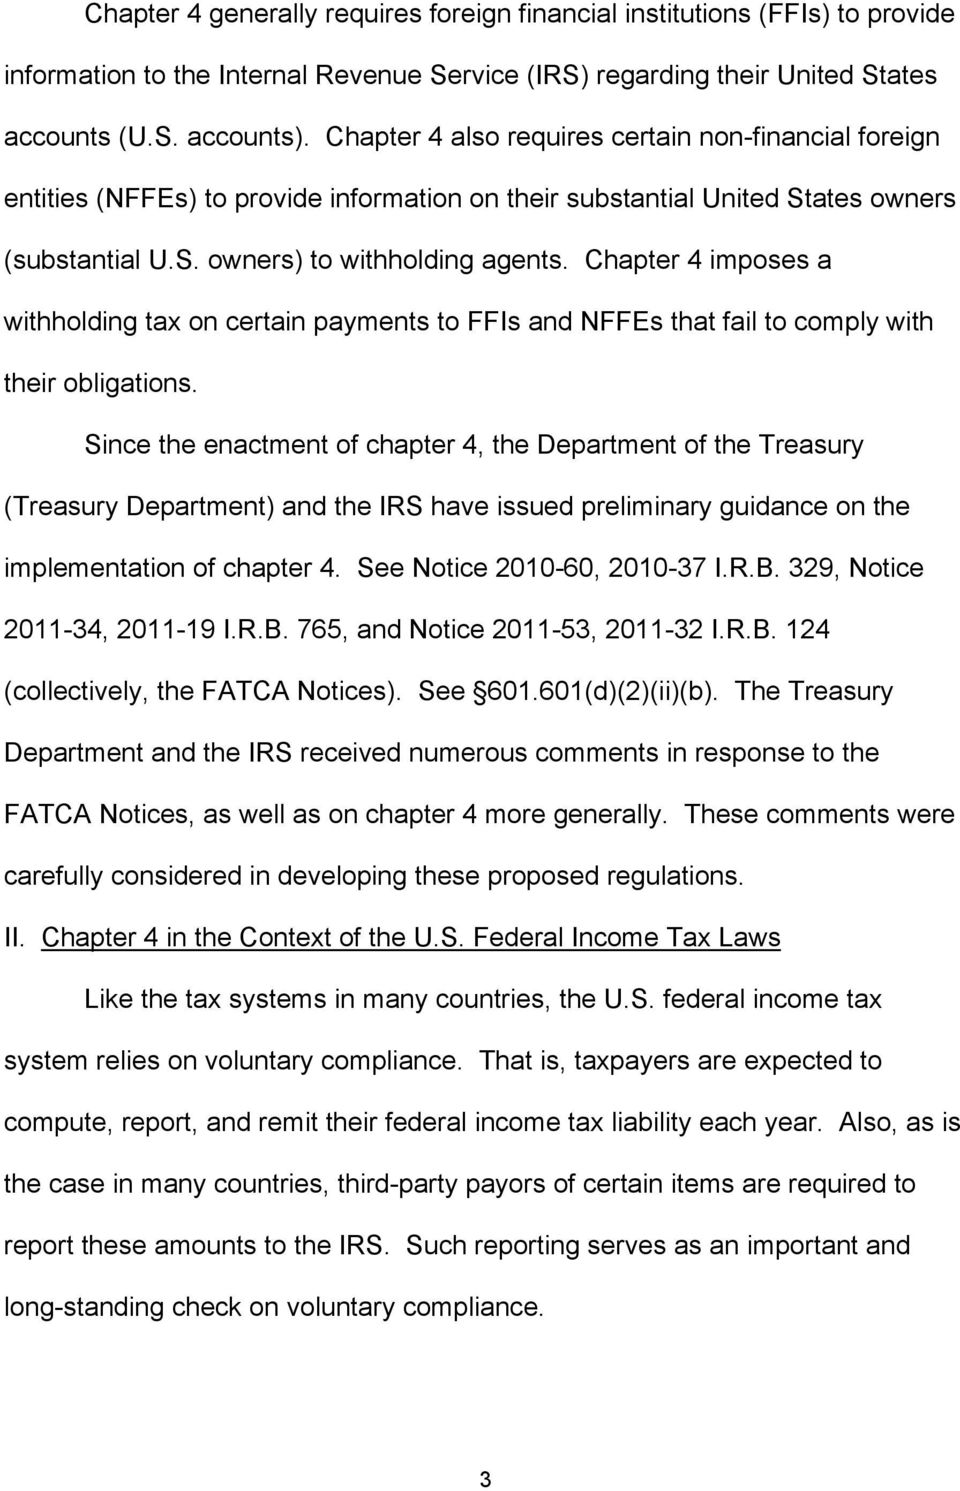 Chapter 4 imposes a withholding tax on certain payments to FFIs and NFFEs that fail to comply with their obligations.